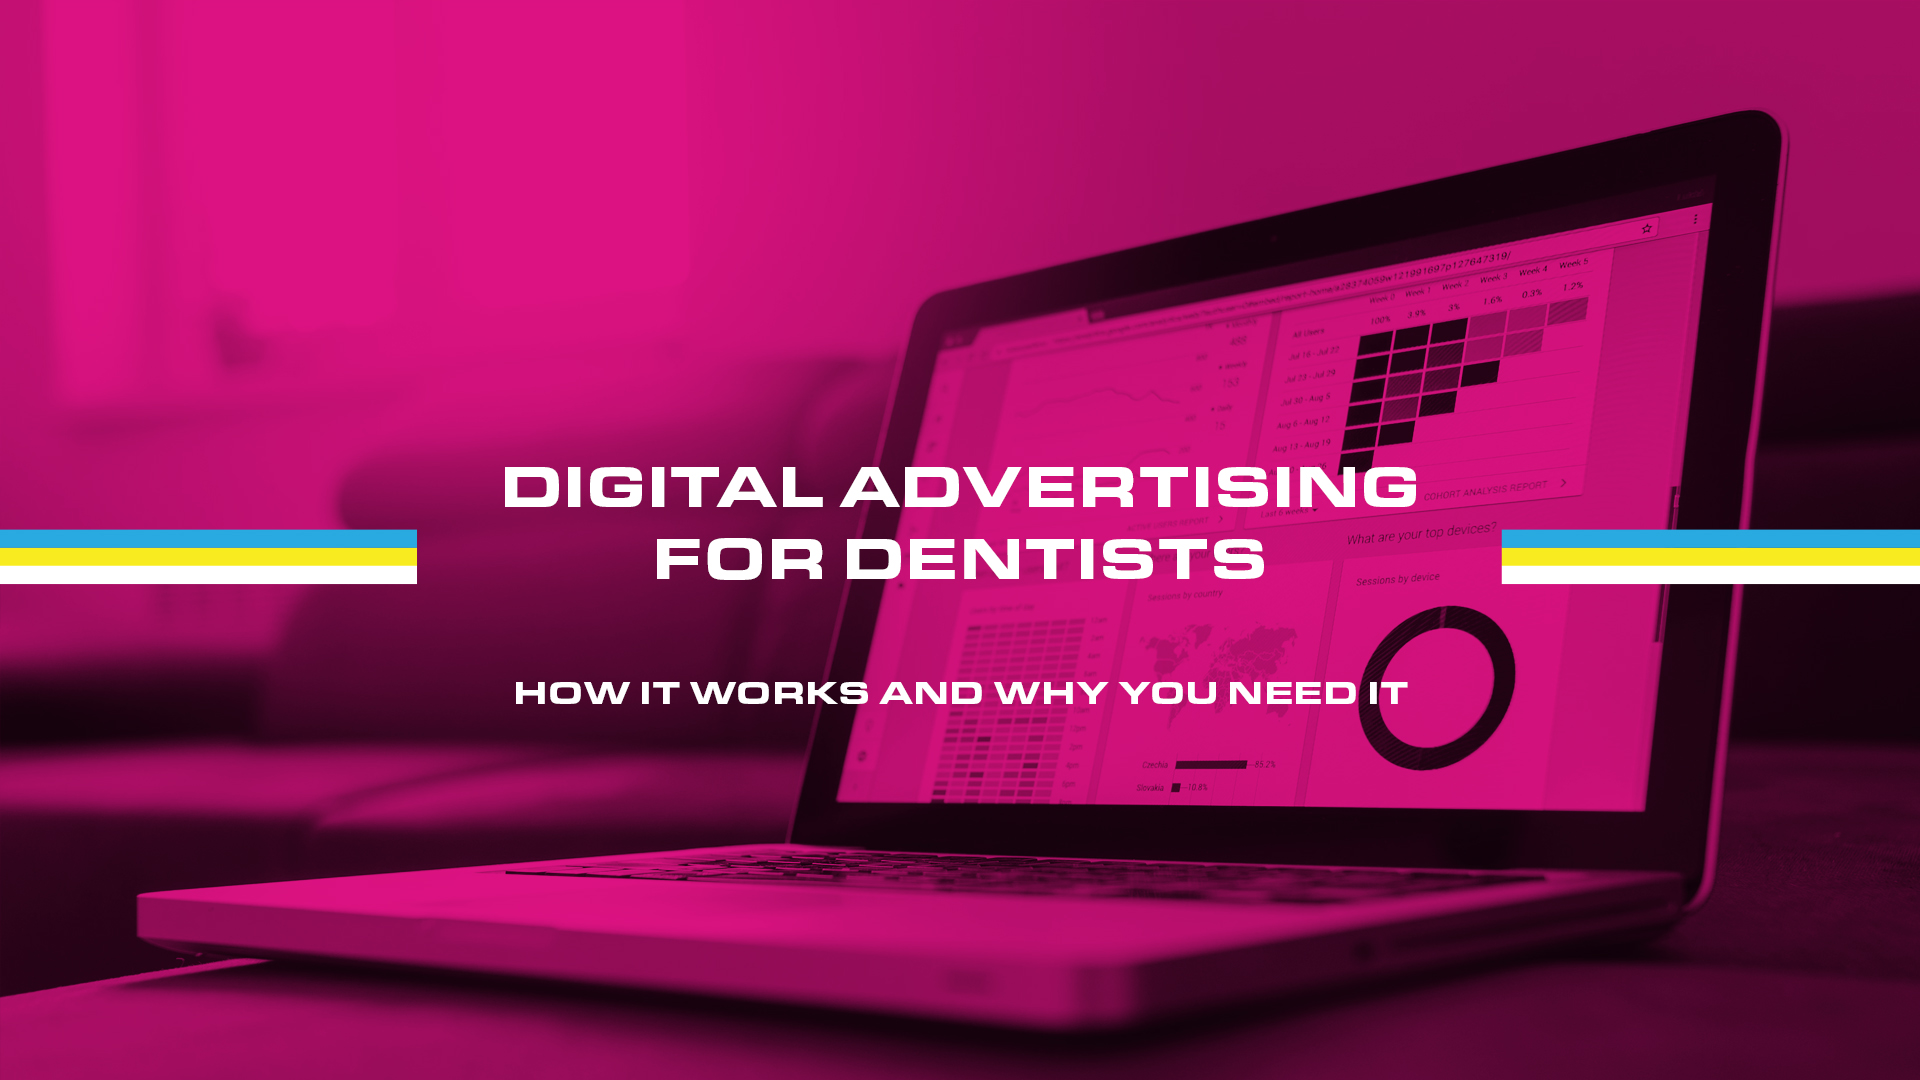 Digital Advertising for Dentists: How It Works and Why You Need It